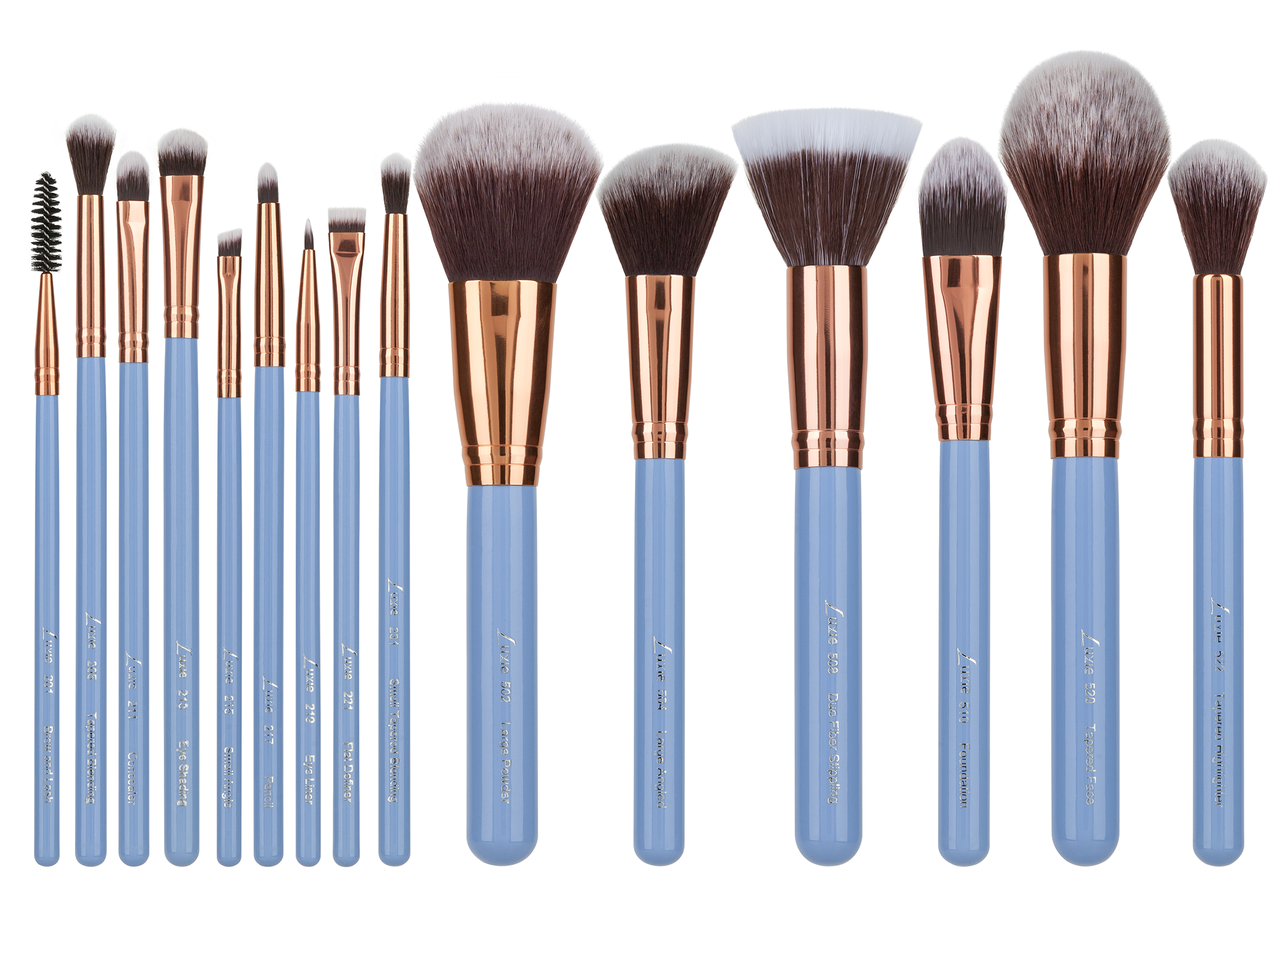 Luxie Dreamcatcher Brush Set Makeup Brush Set Brush Set Eye Brushes